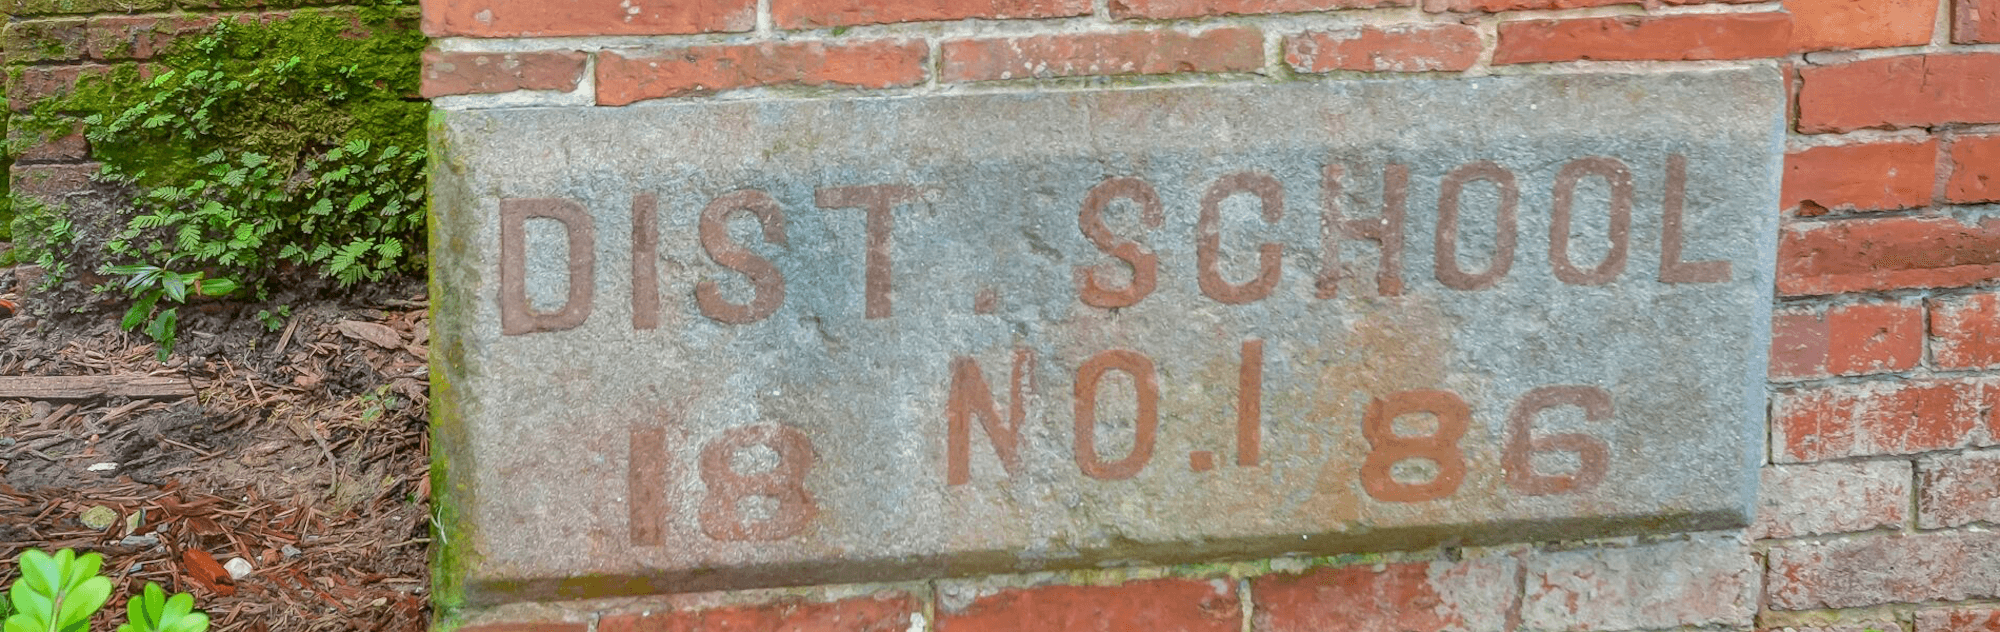 Amelia Schoolhouse district school 18 brick sign